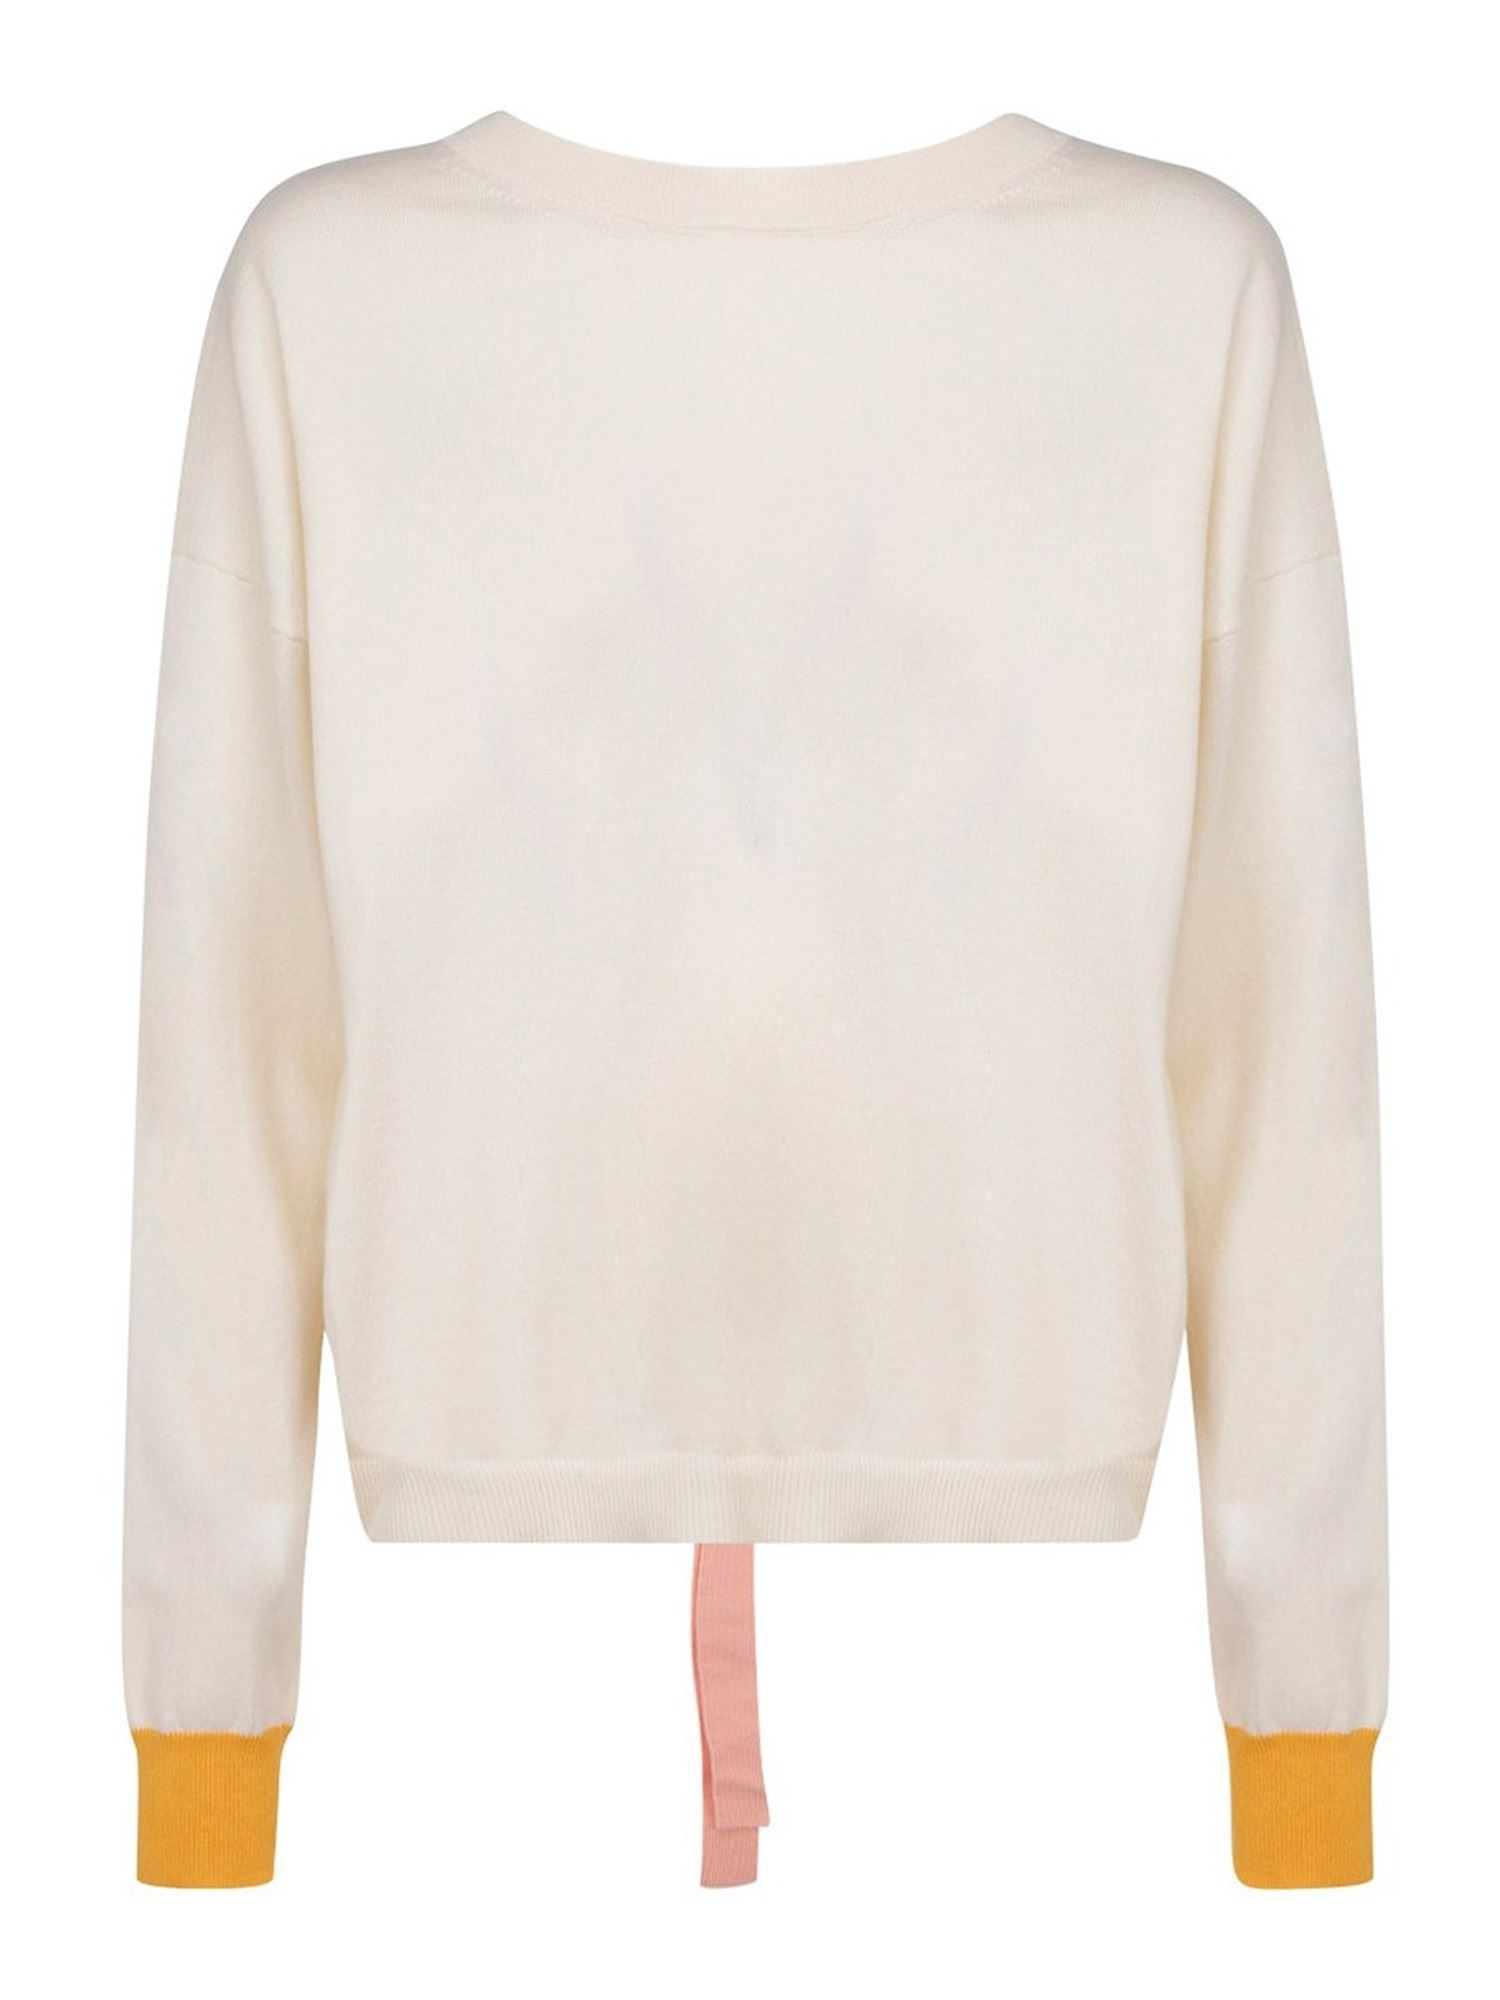 Marni OPEN BACK COTTON JUMPER IN BEIGE